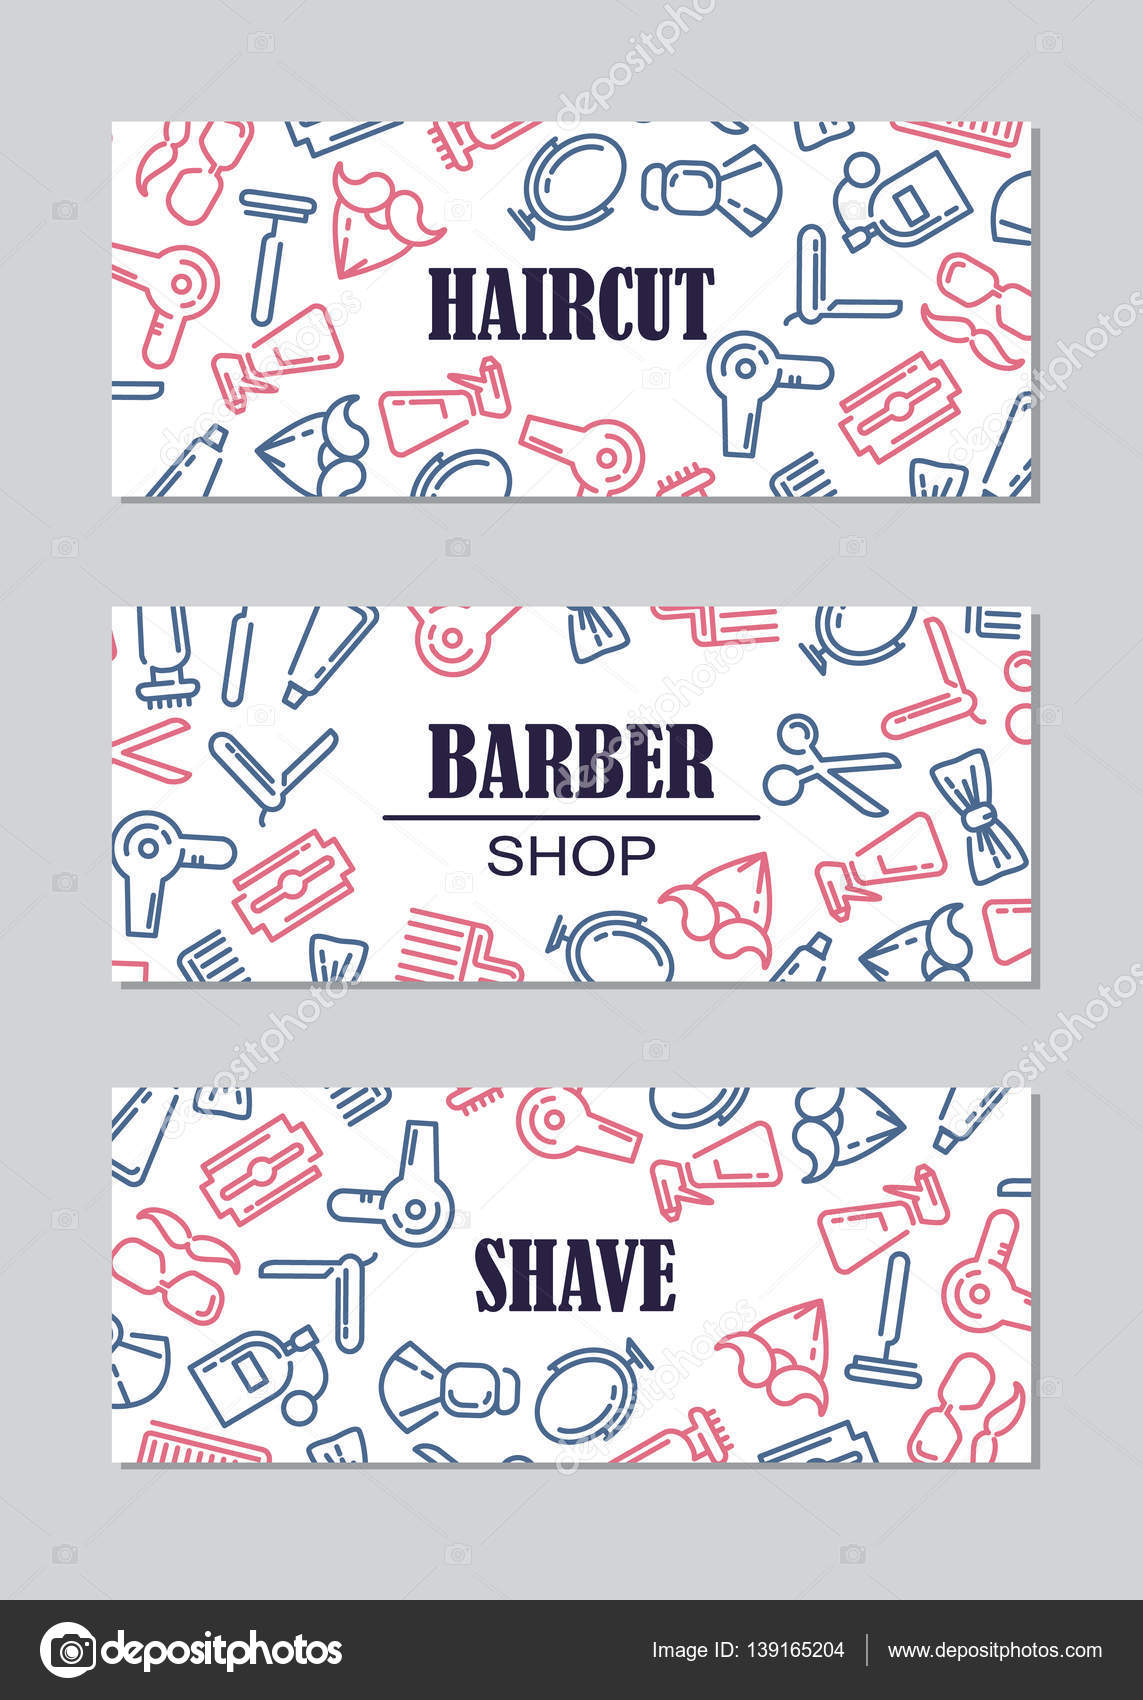 Barber shop banner plantillas — Vector de stock © vextok #139165204